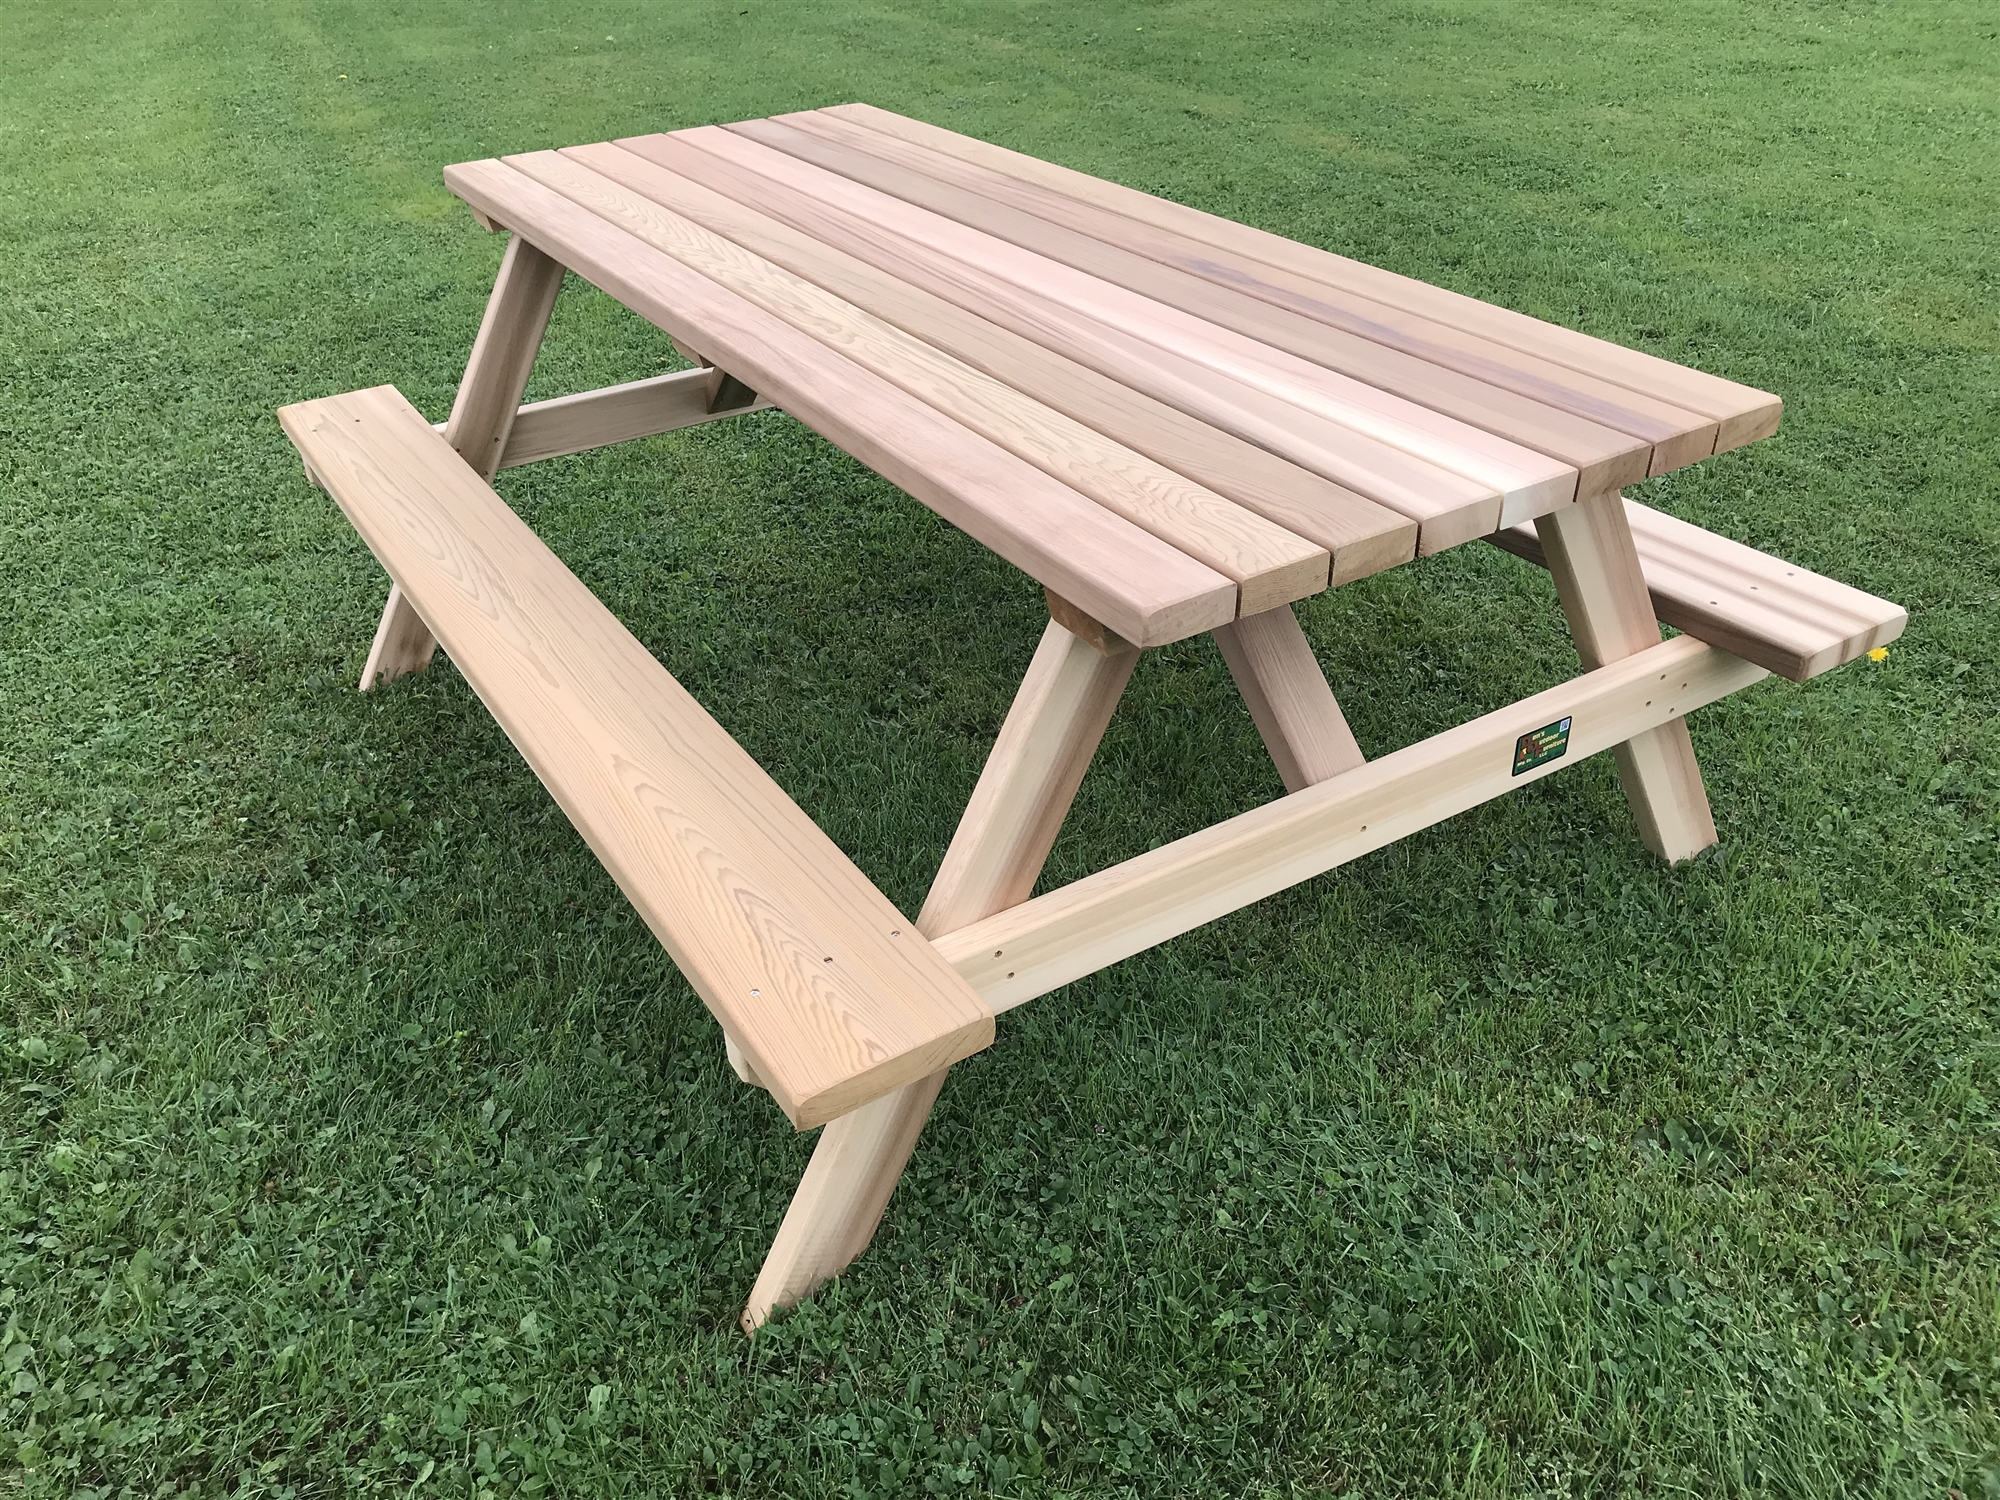 6u0027 Deluxe Picnic Table With Seats